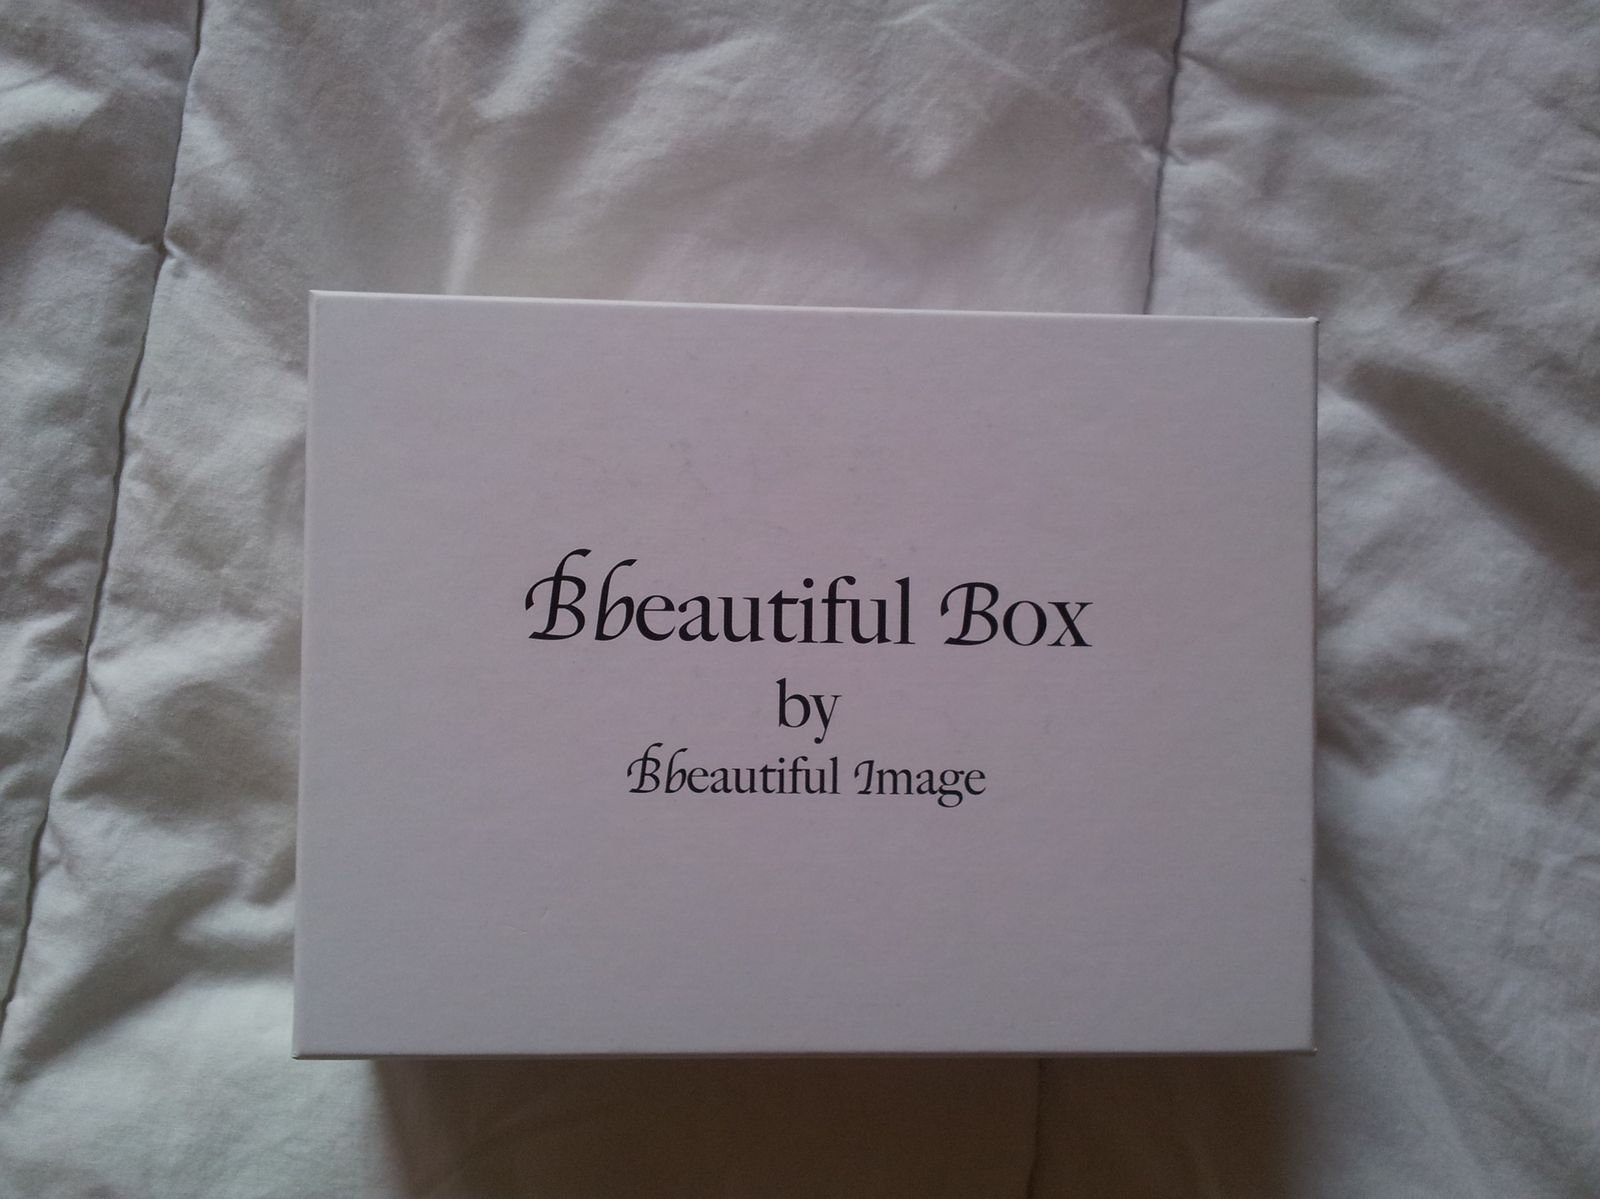 Bbeautiful Box septembre